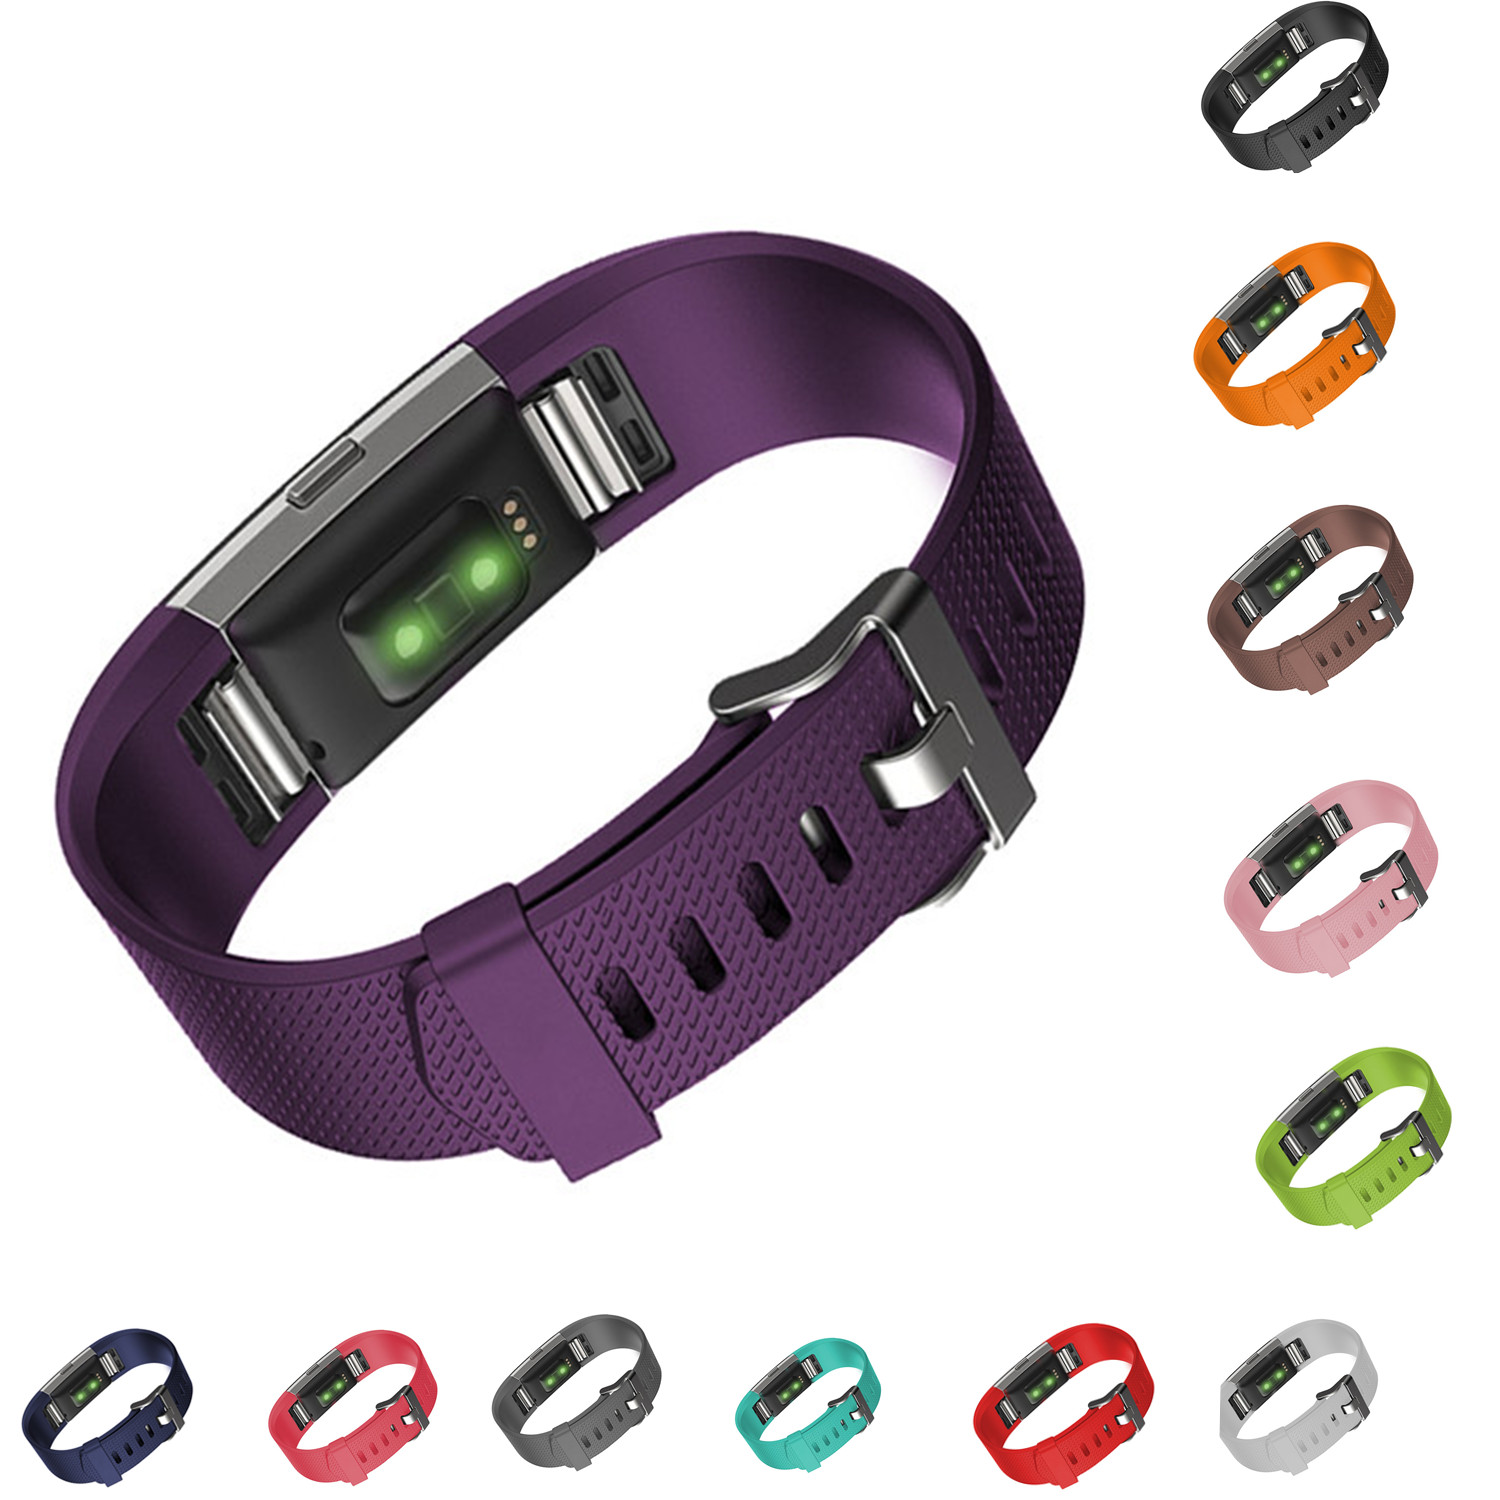 CRESTED sports silicone wristwatch band for FitBit Charge 2 band  Wrist Bracelet Silicone Bracelet Strap Band Replacement Wrist crested stainless steel watch band for fitbit charge 2 bracelet smart watch strap for fitbit charge2 with connector